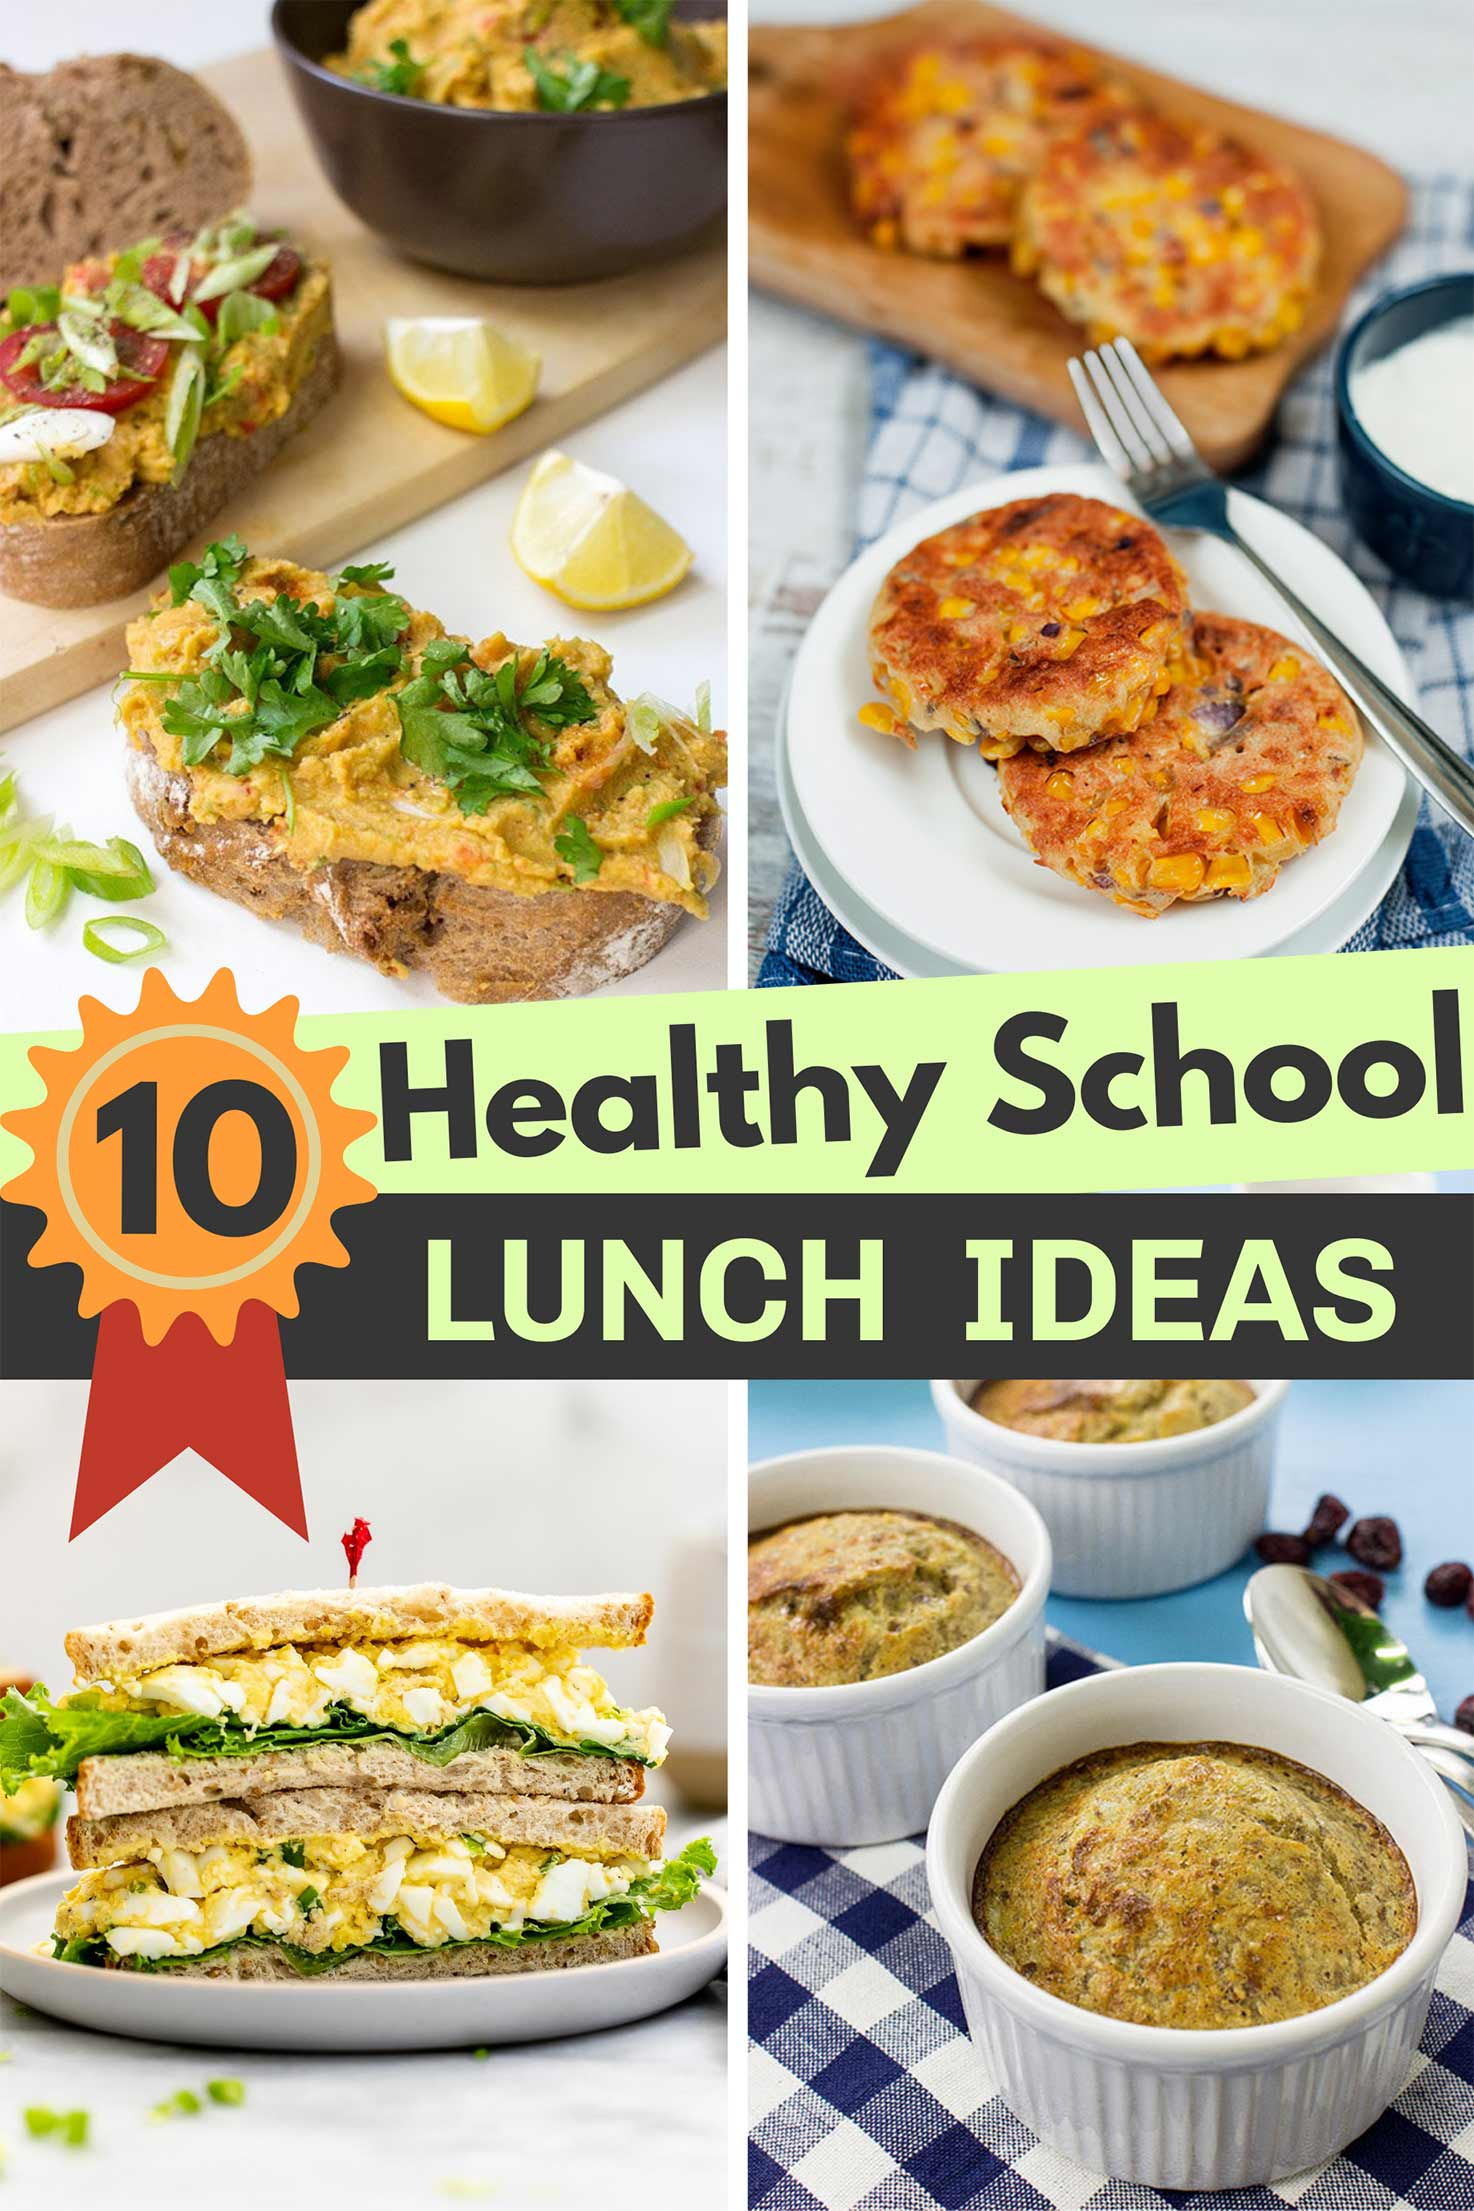 Top 10 Healthy School Lunch Ideas – Delicious, well-balanced and all kid-friendly recipes | Hurry The Food Up